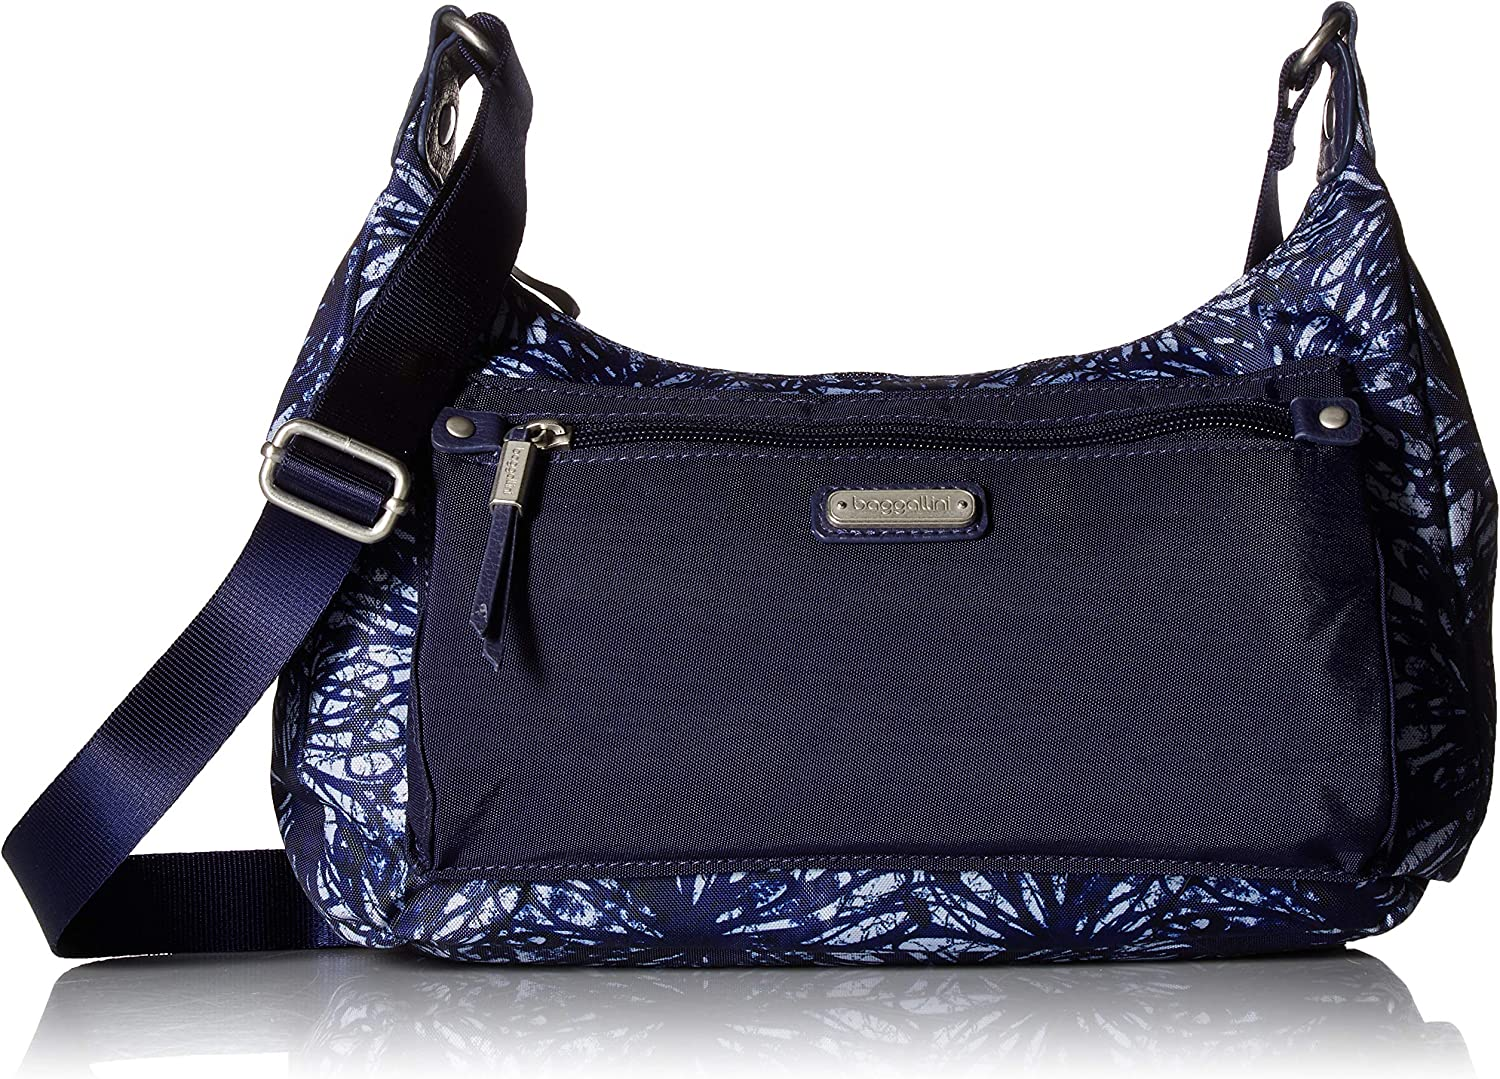 Baggallini Out and Super beauty product restock quality top About Clearance SALE! Limited time! Bagg with Wristlet RFID Phone